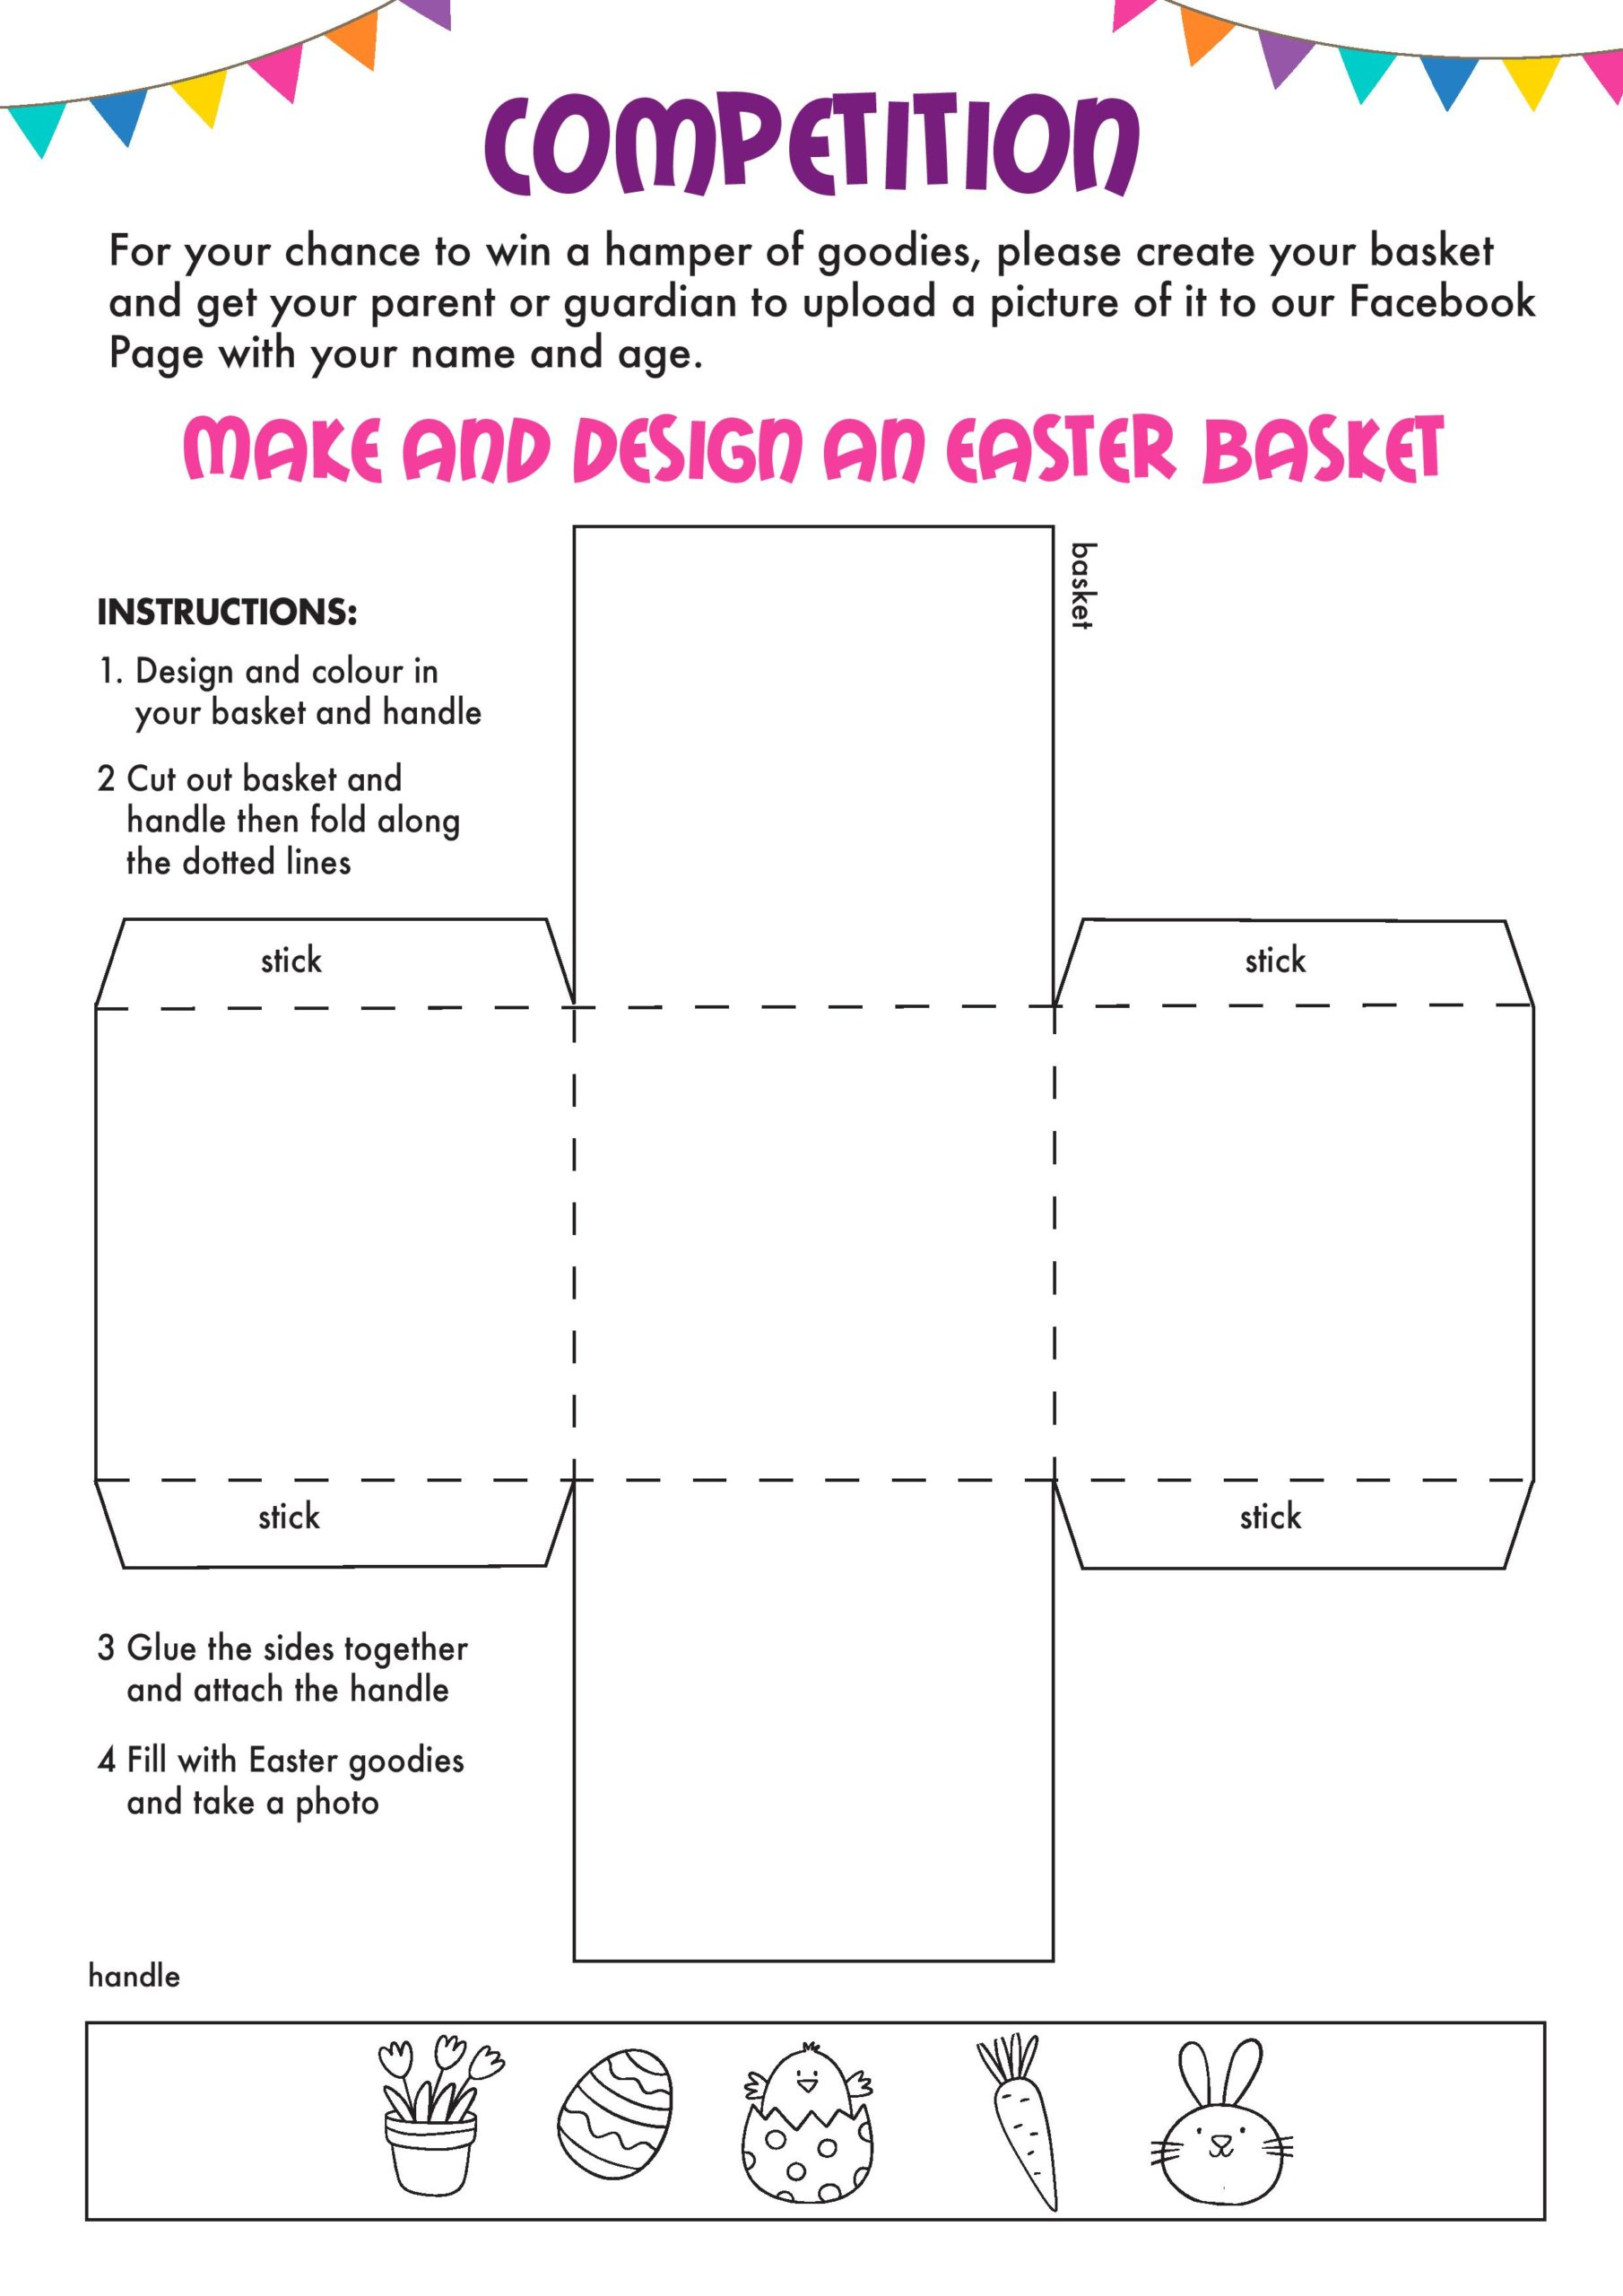 MAKE AND DESIGN AN EASTER BASKET